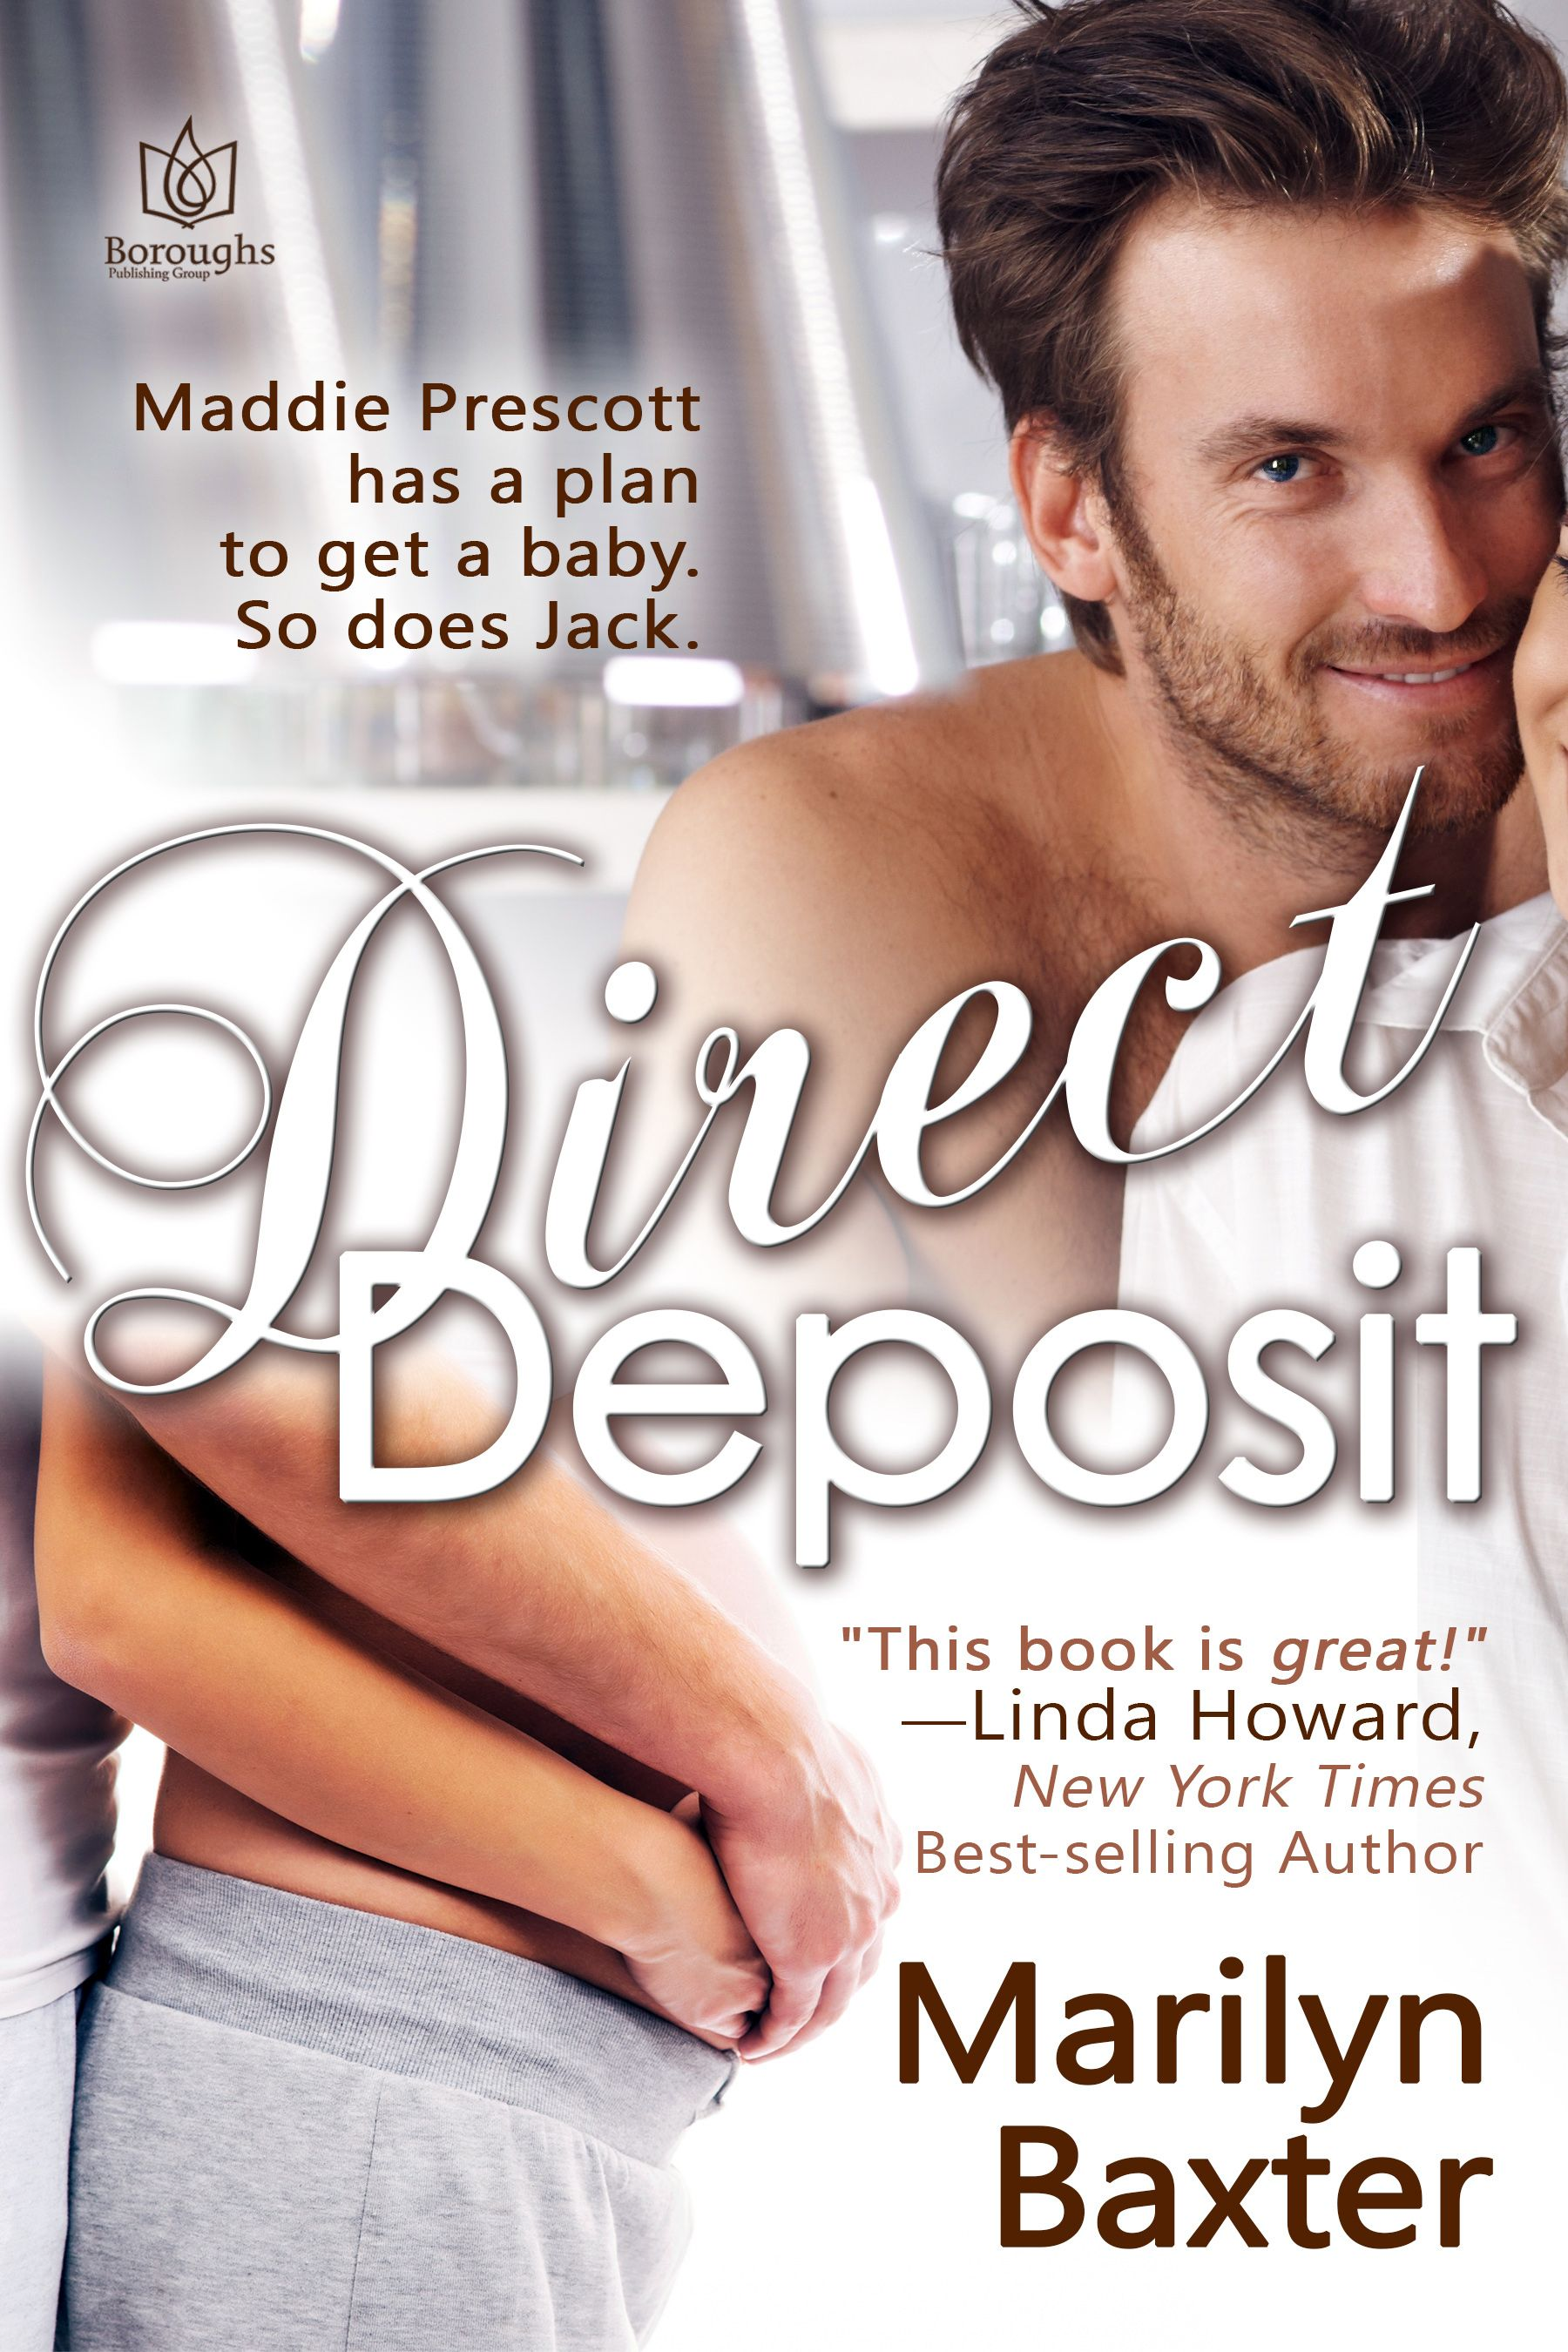 Direct Deposit, available January 20, 2015 from a variety of digital retailers